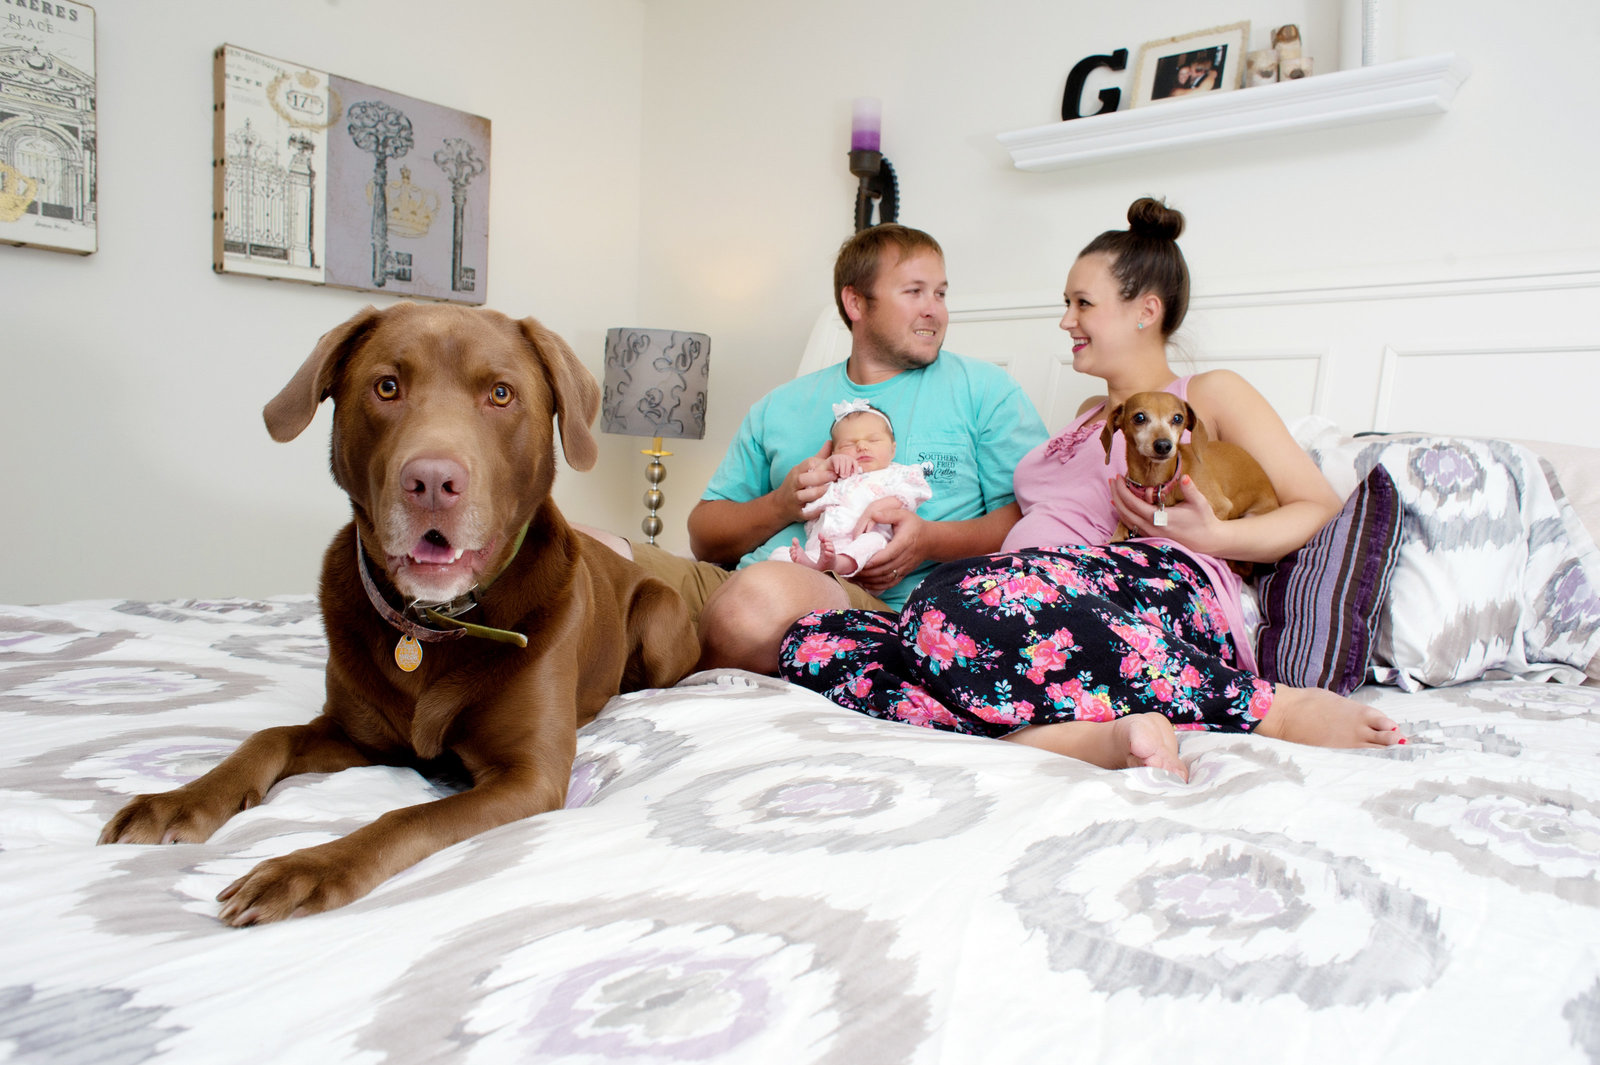 a family with a newborn baby sit on a bed with their two dogs